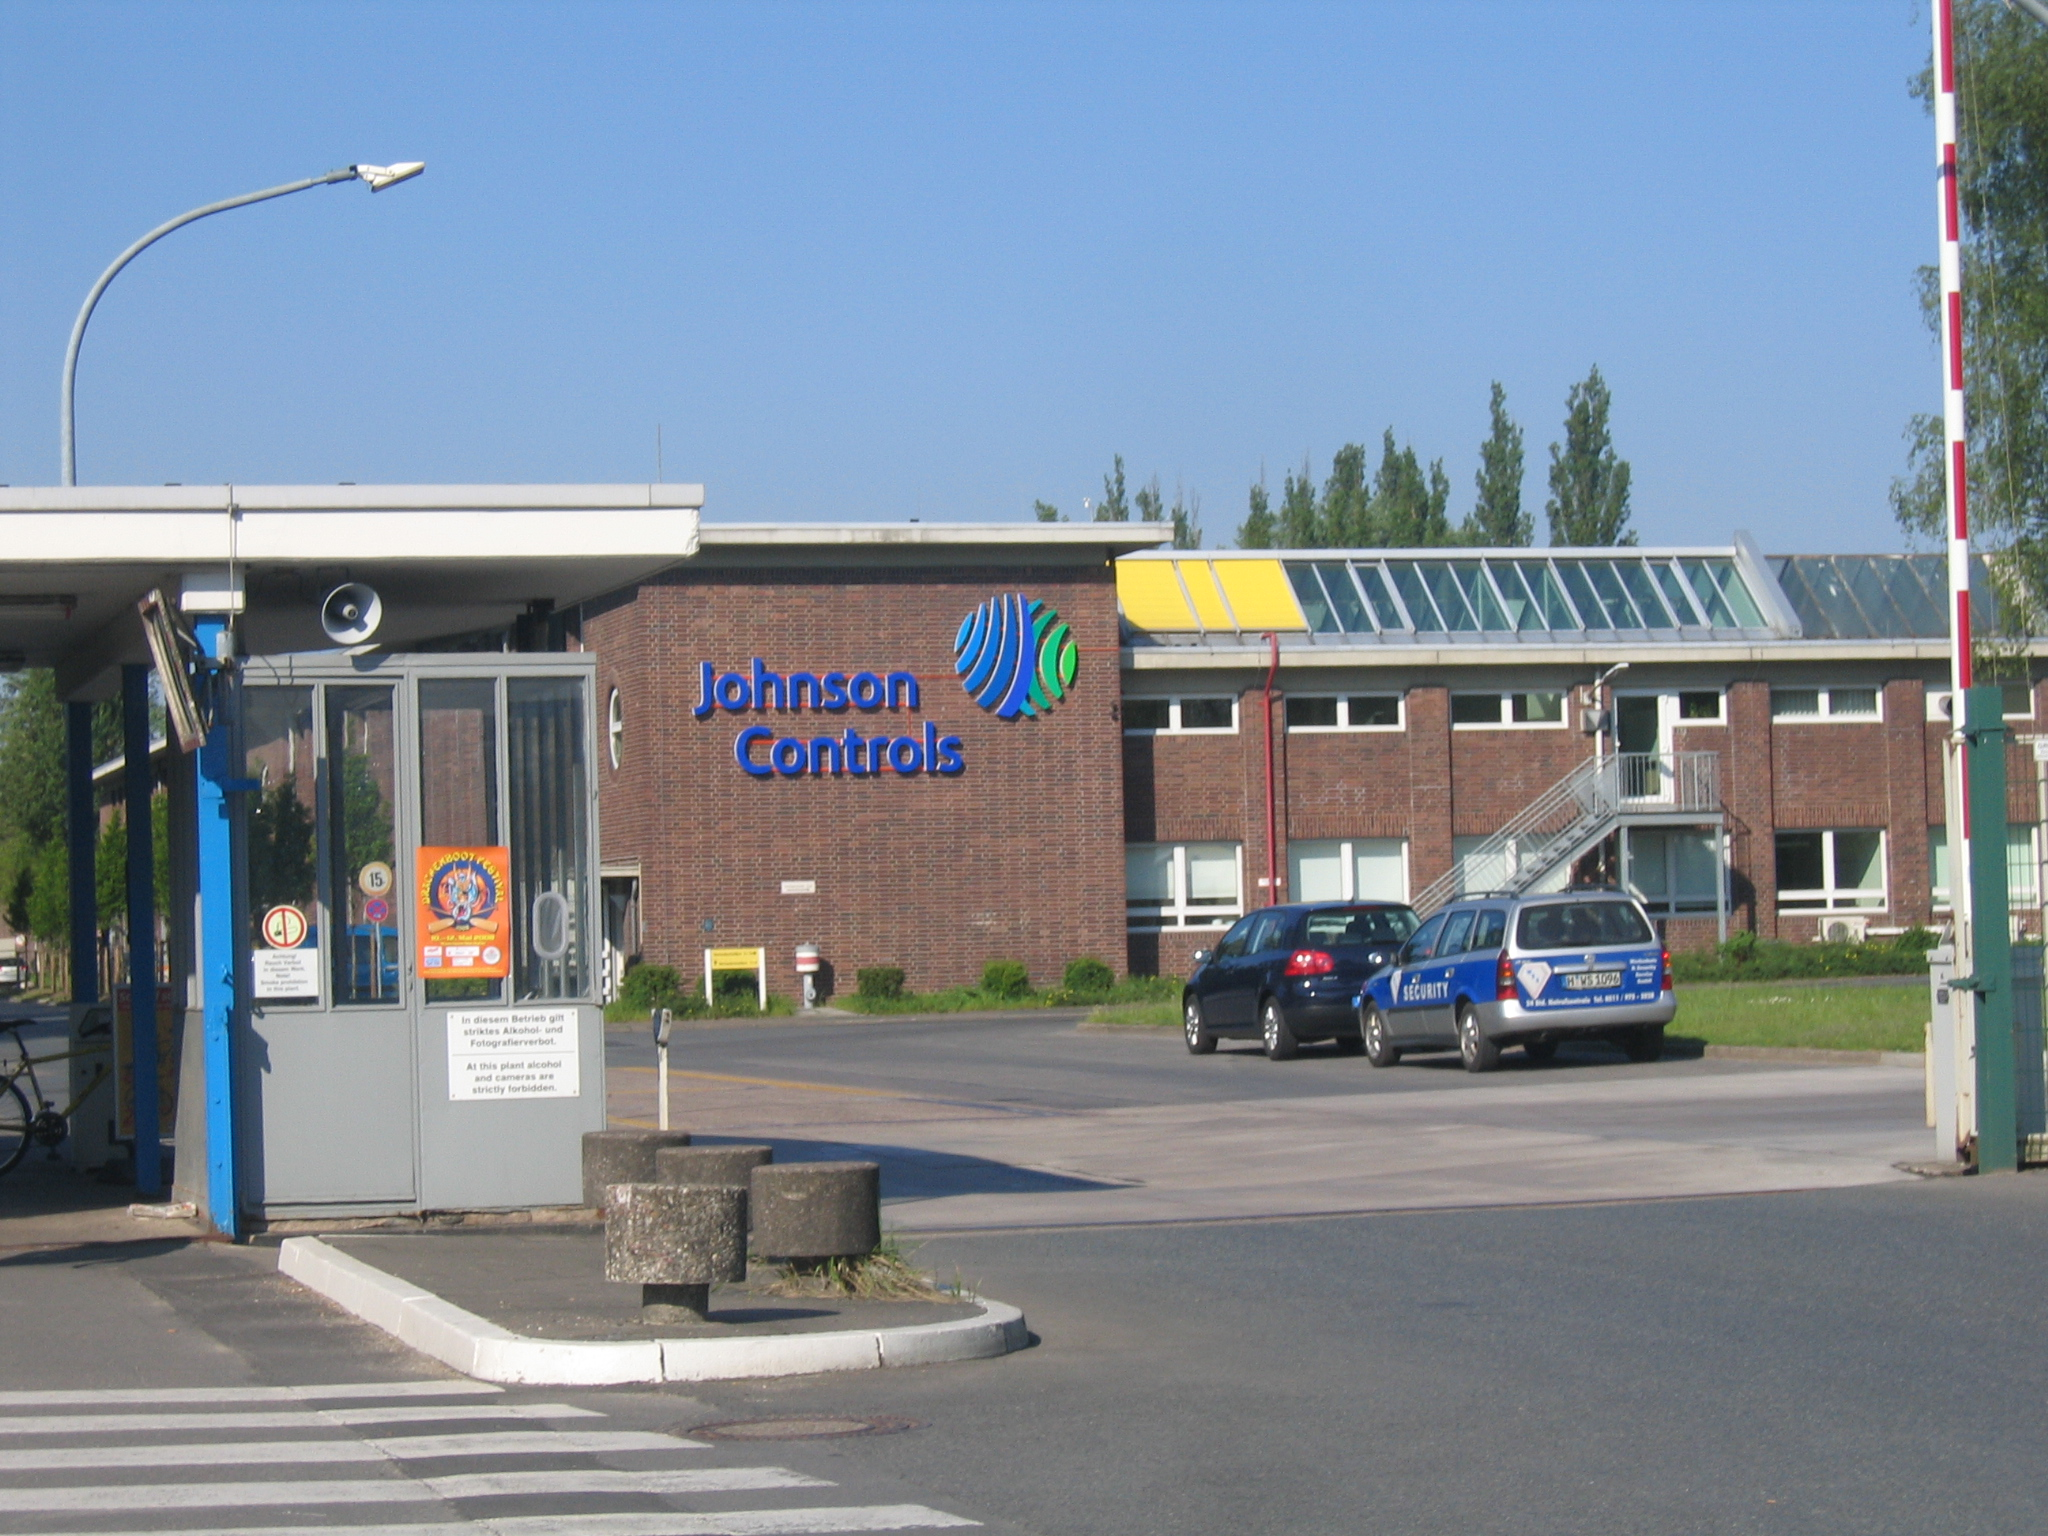 Johnson Controls – Wikipedia